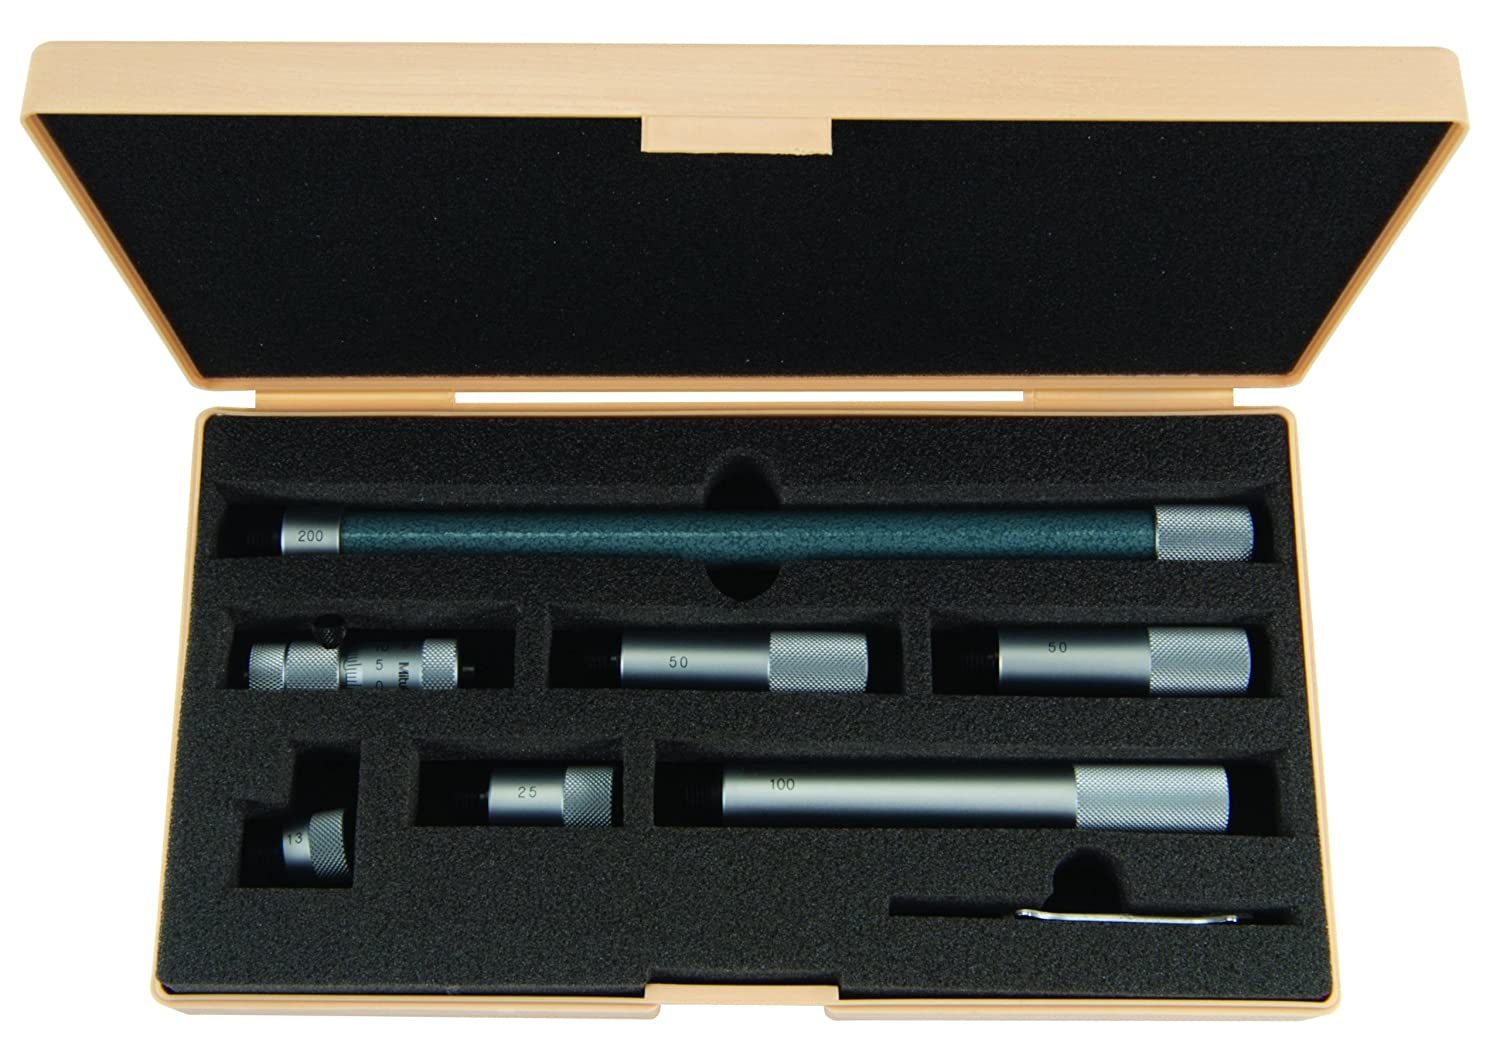 +//-0.019mm Accuracy 50-500mm Range 0.01mm Graduation Mitutoyo 137-208 Tubular Vernier Inside Micrometer Carbide Tipped Face 6 pcs Extension Rods Extension Rod Type